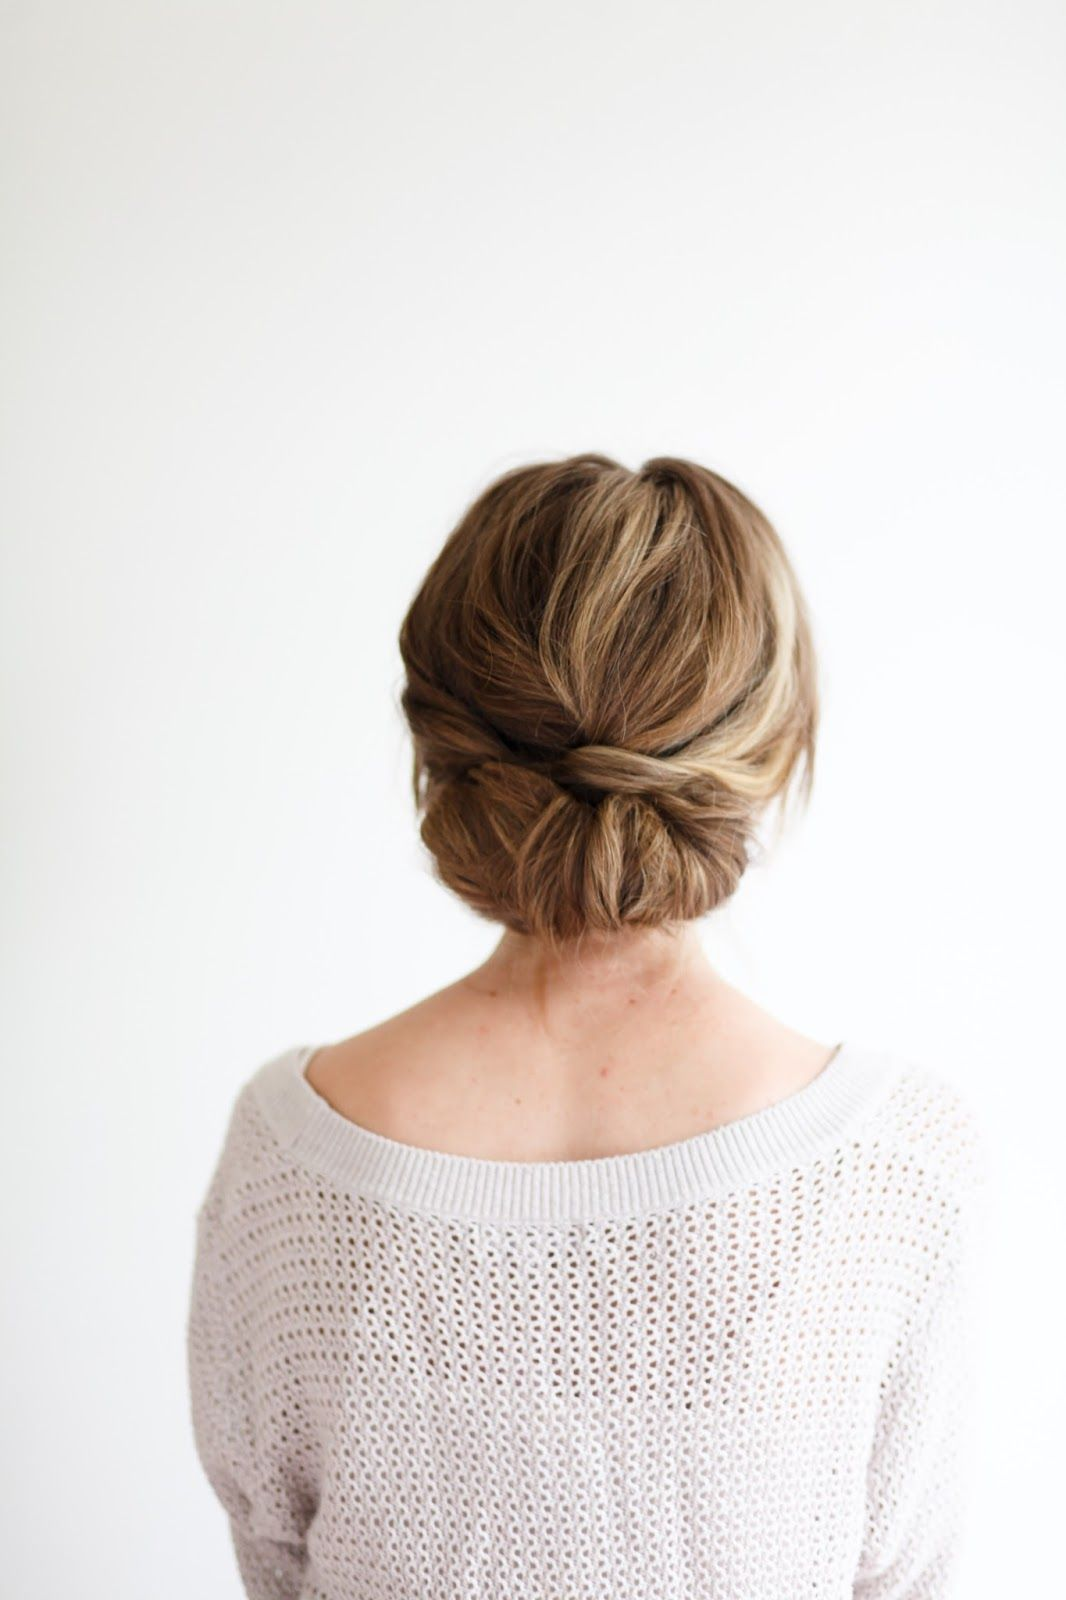 Wedding Hairstyles You\'ll Fall in Love With | Night hair, Hair style ...